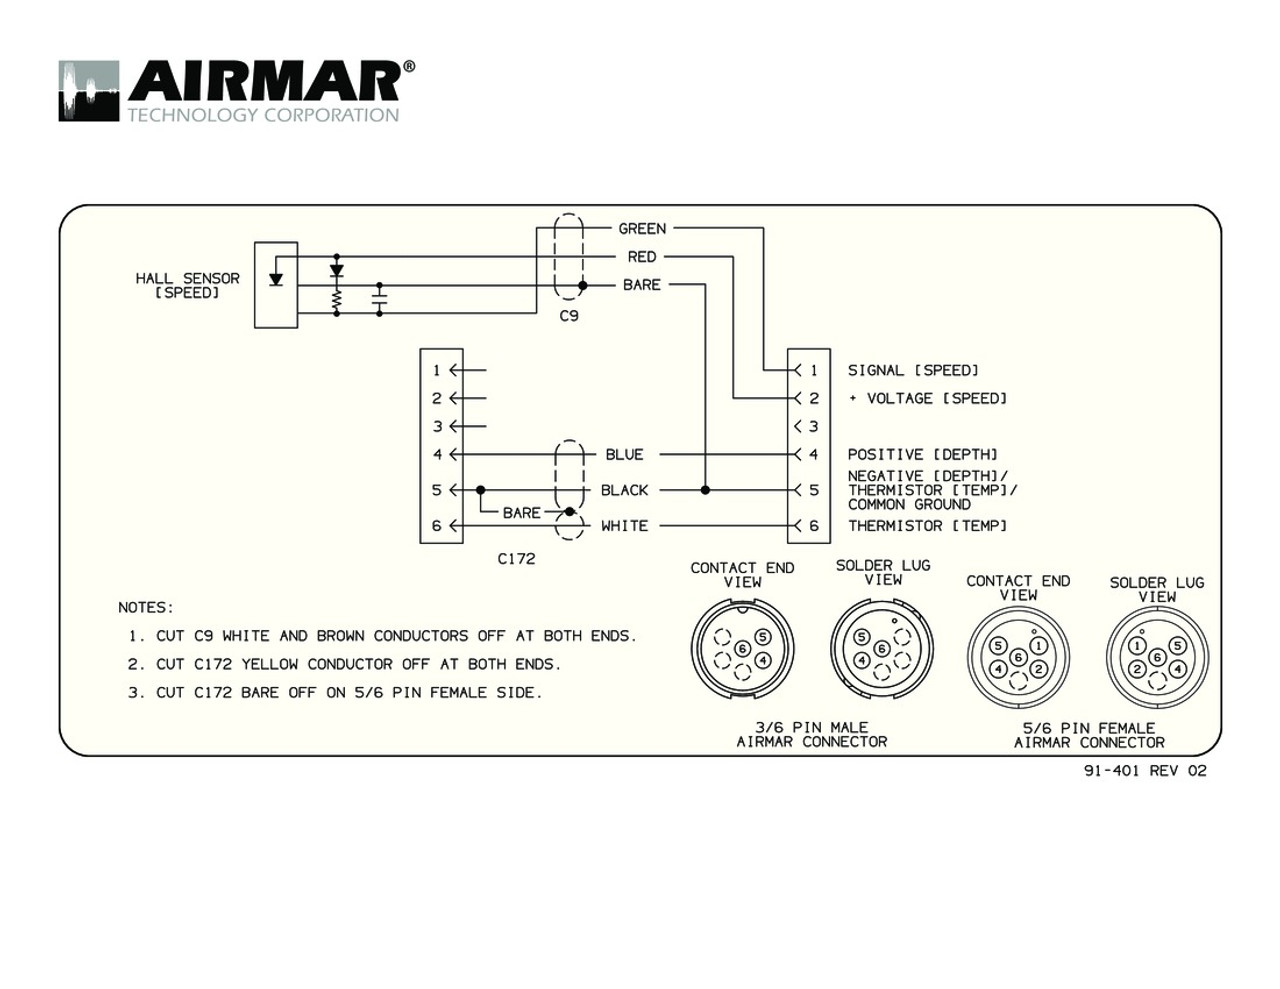 Airmar Wiring Diagram Garmin 6 pin (S) | Blue Bottle Marine on